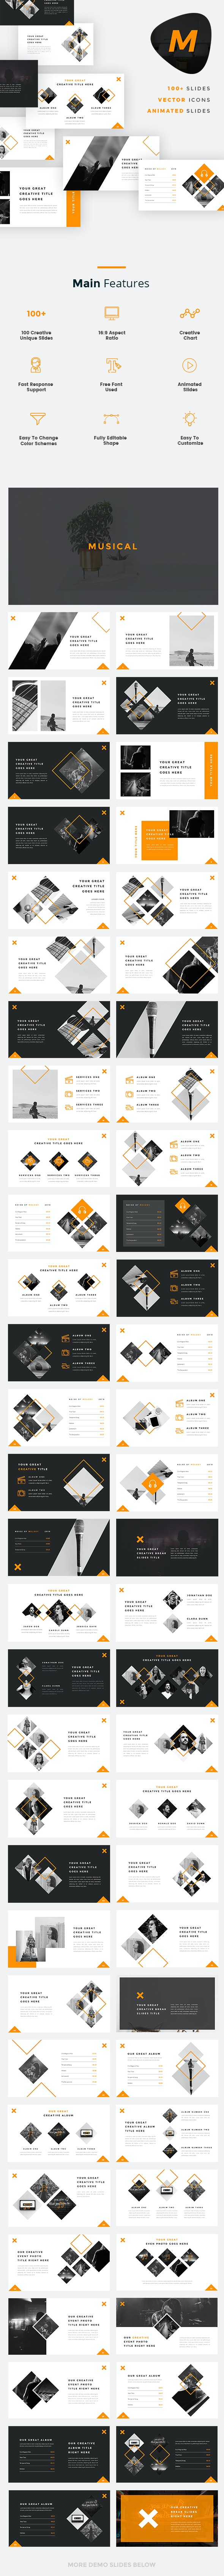 Musical - Music And Band Google Slides Template - Google Slides Presentation Templates